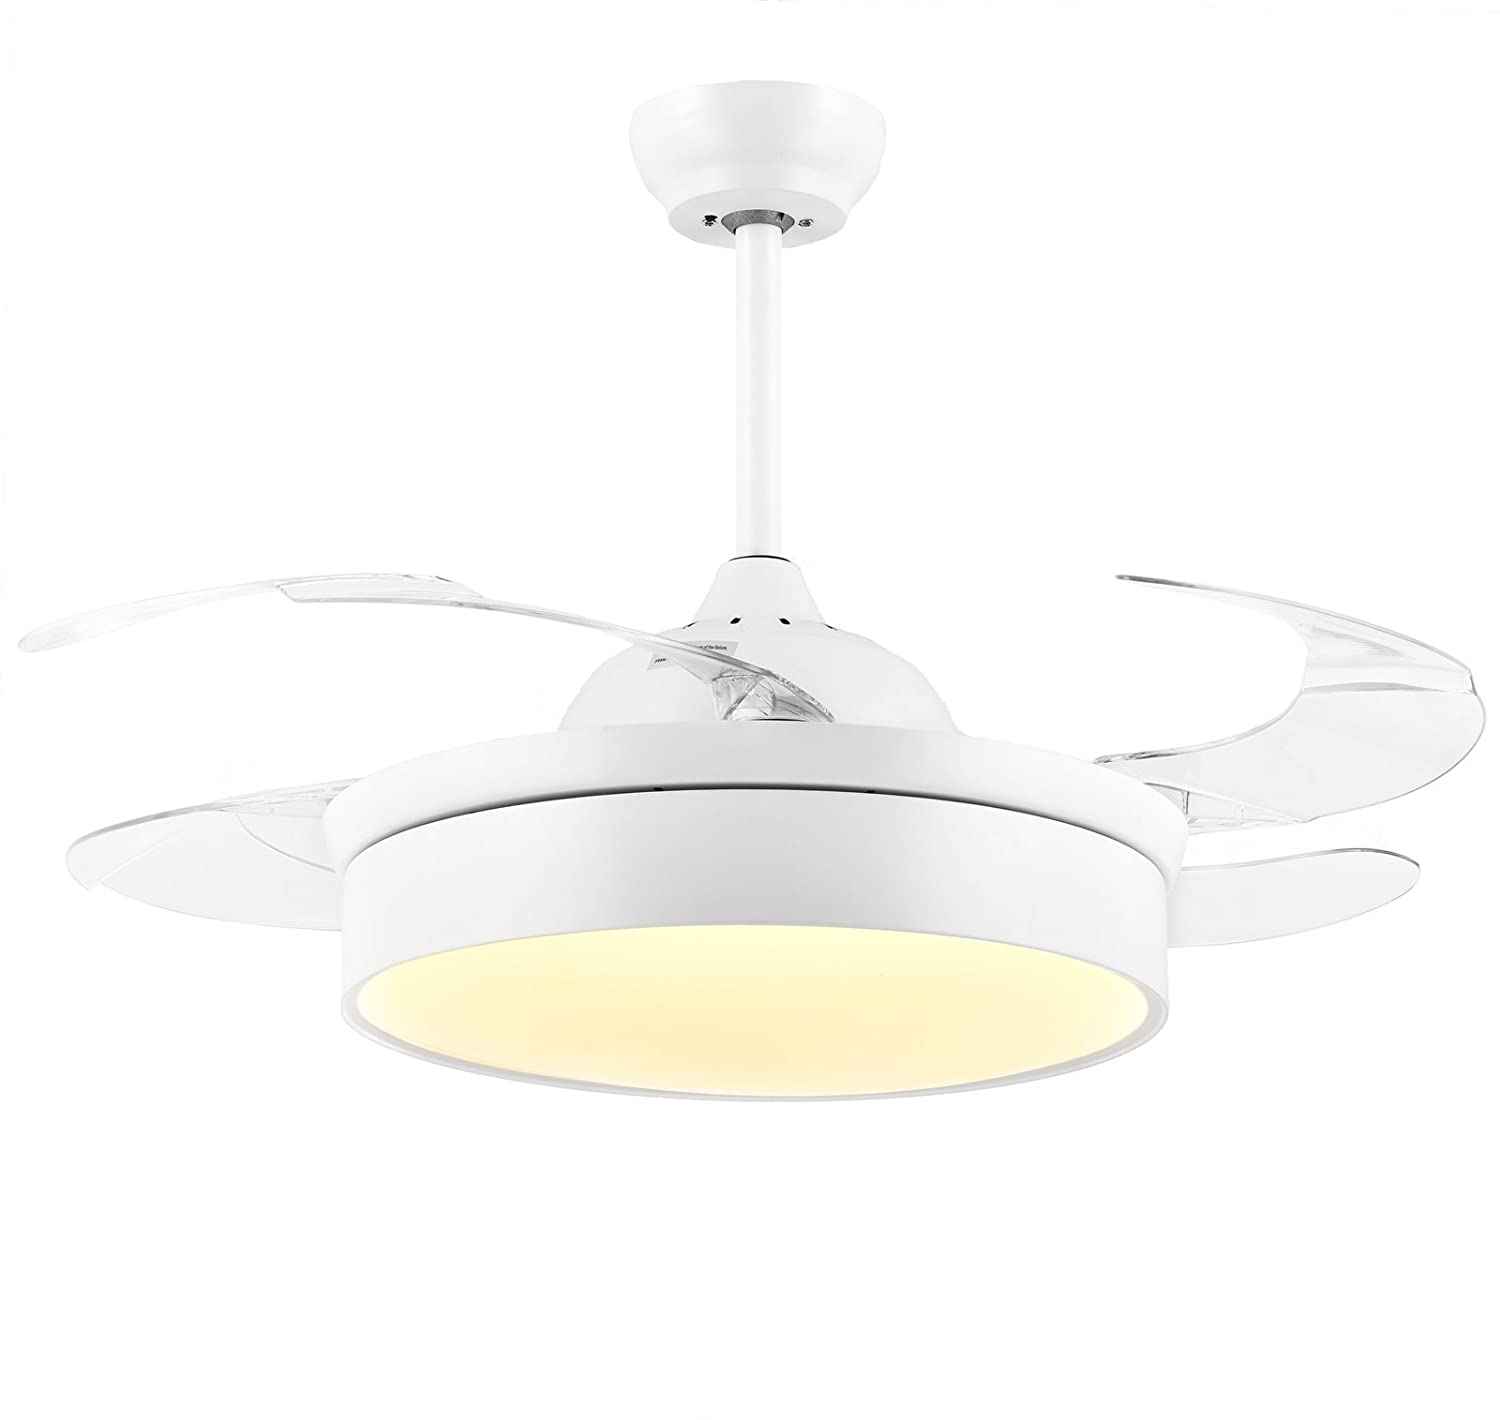 Cool white ceiling fans Light Noxarte 36 Inch Promote Natural Ventilation White Shade Invisible Fan Led Dimmable warmdaylightcool White Chandelier Foldable Ceiling Fans With Lights Online Lighting Noxarte 36 Inch Promote Natural Ventilation White Shade Invisible